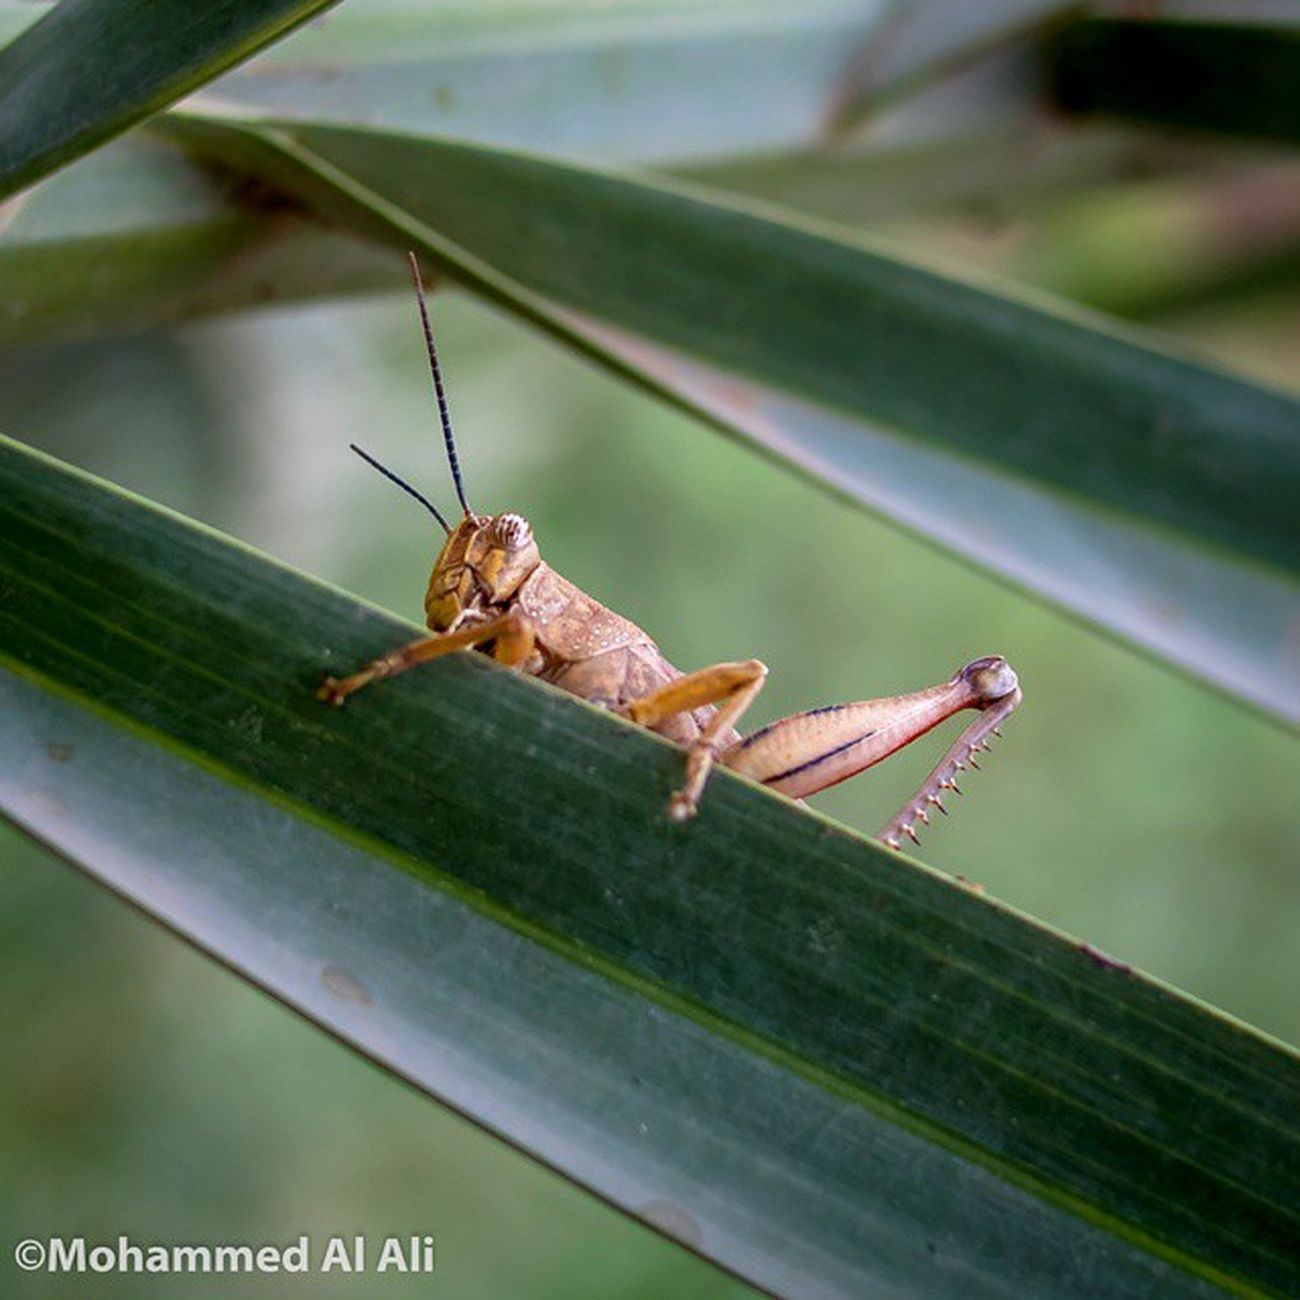 Olympus OlympusPEN PL7 20mm 1 .7 Lens Lumix Macro Micro_four_third Palm Blur Steel Basrah Iraq Mft Olympuspenepl7 Insects  Grasshopper